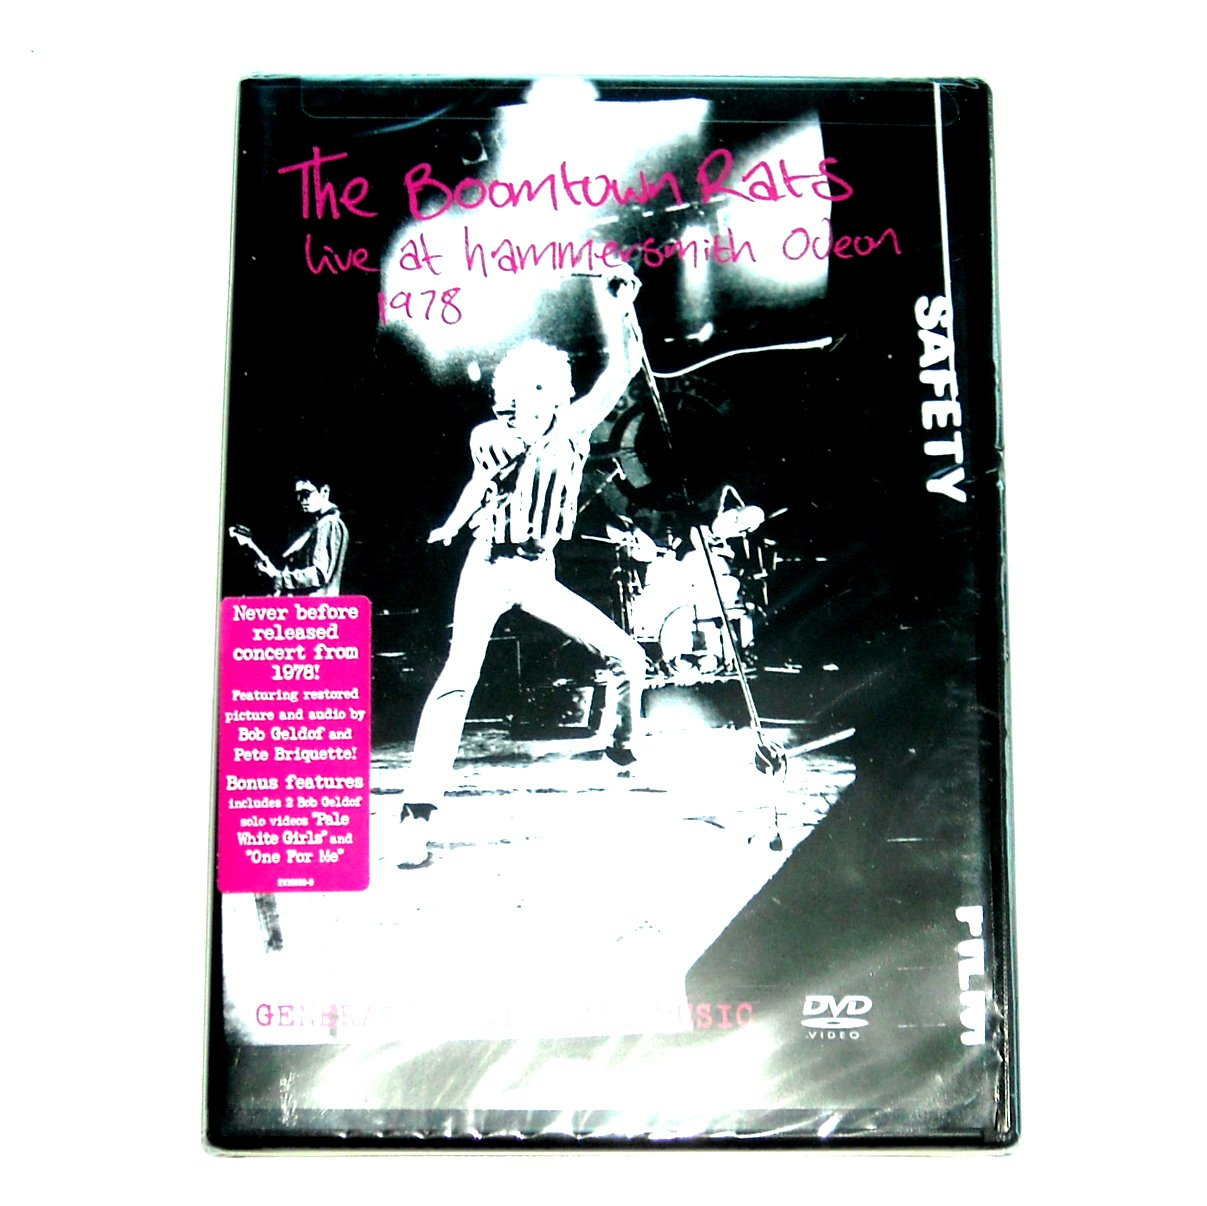 Boomtown Rats Live at Hammersmith Odeon 1978 DVD